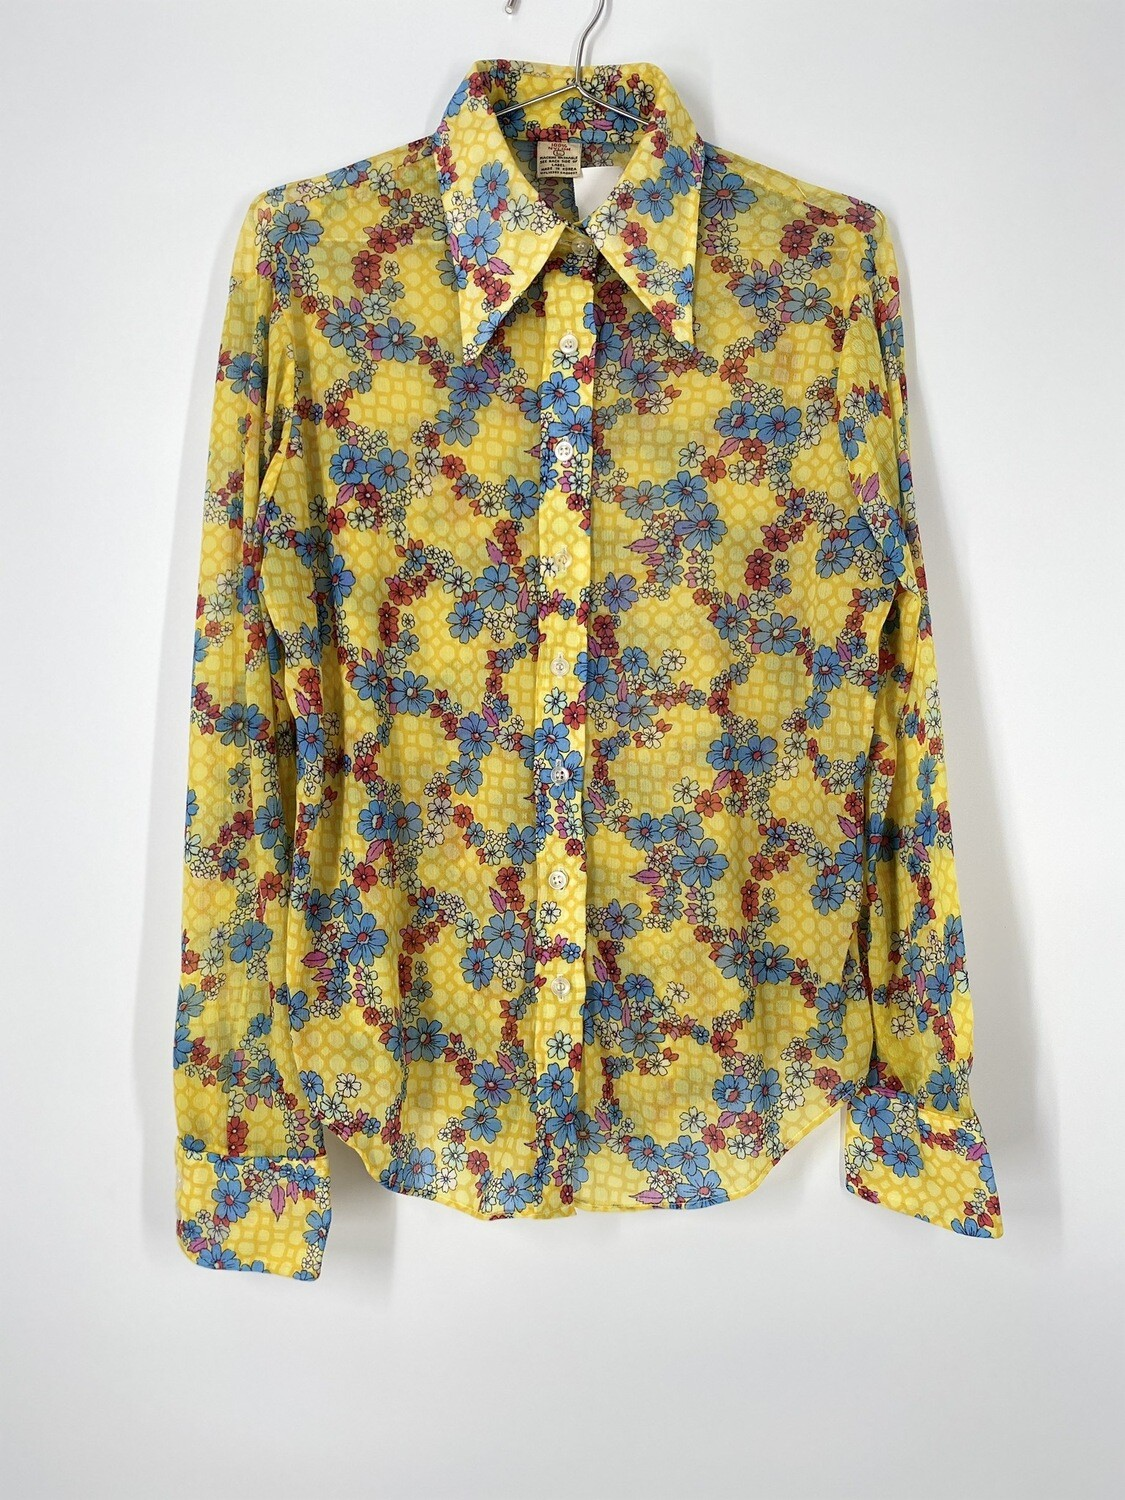 Retro Yellow Floral Button Up Top Size L